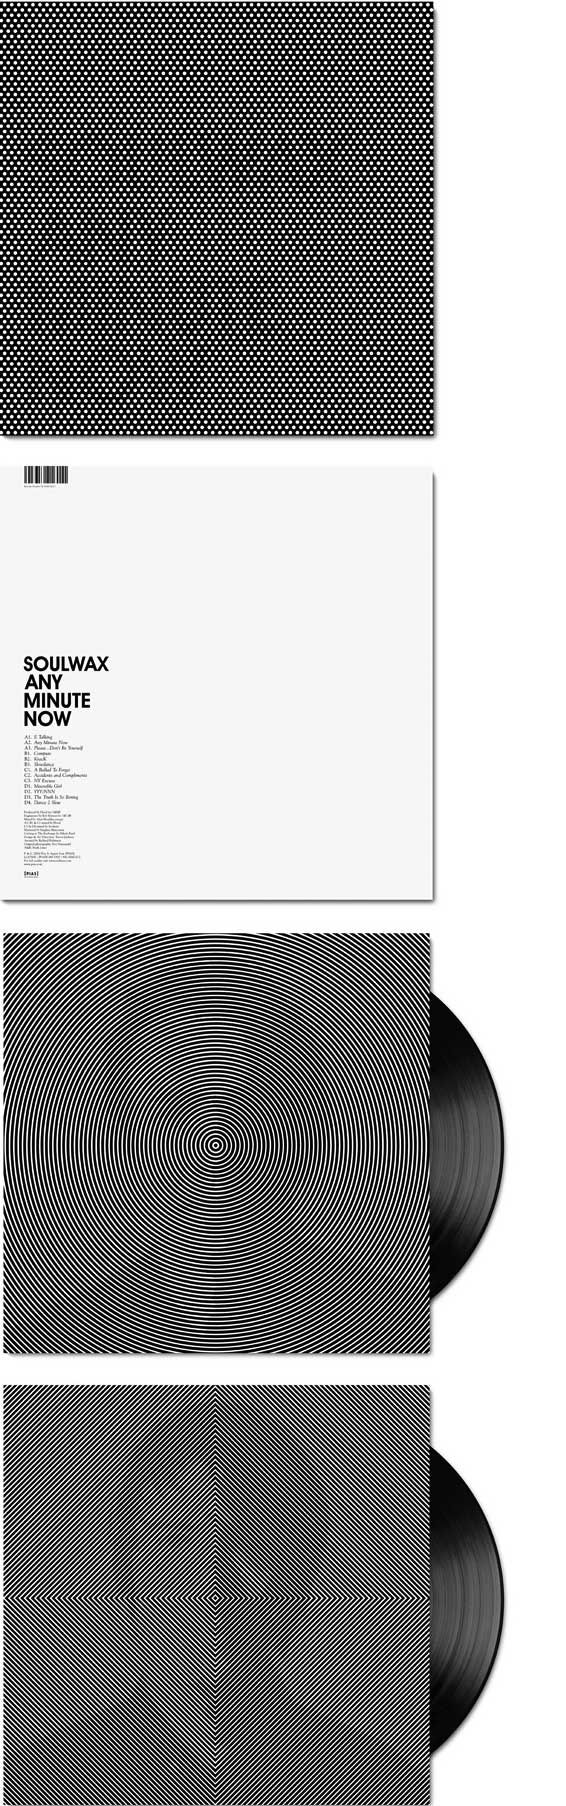 Soulwax / Any Minute Now | scroll to view #design